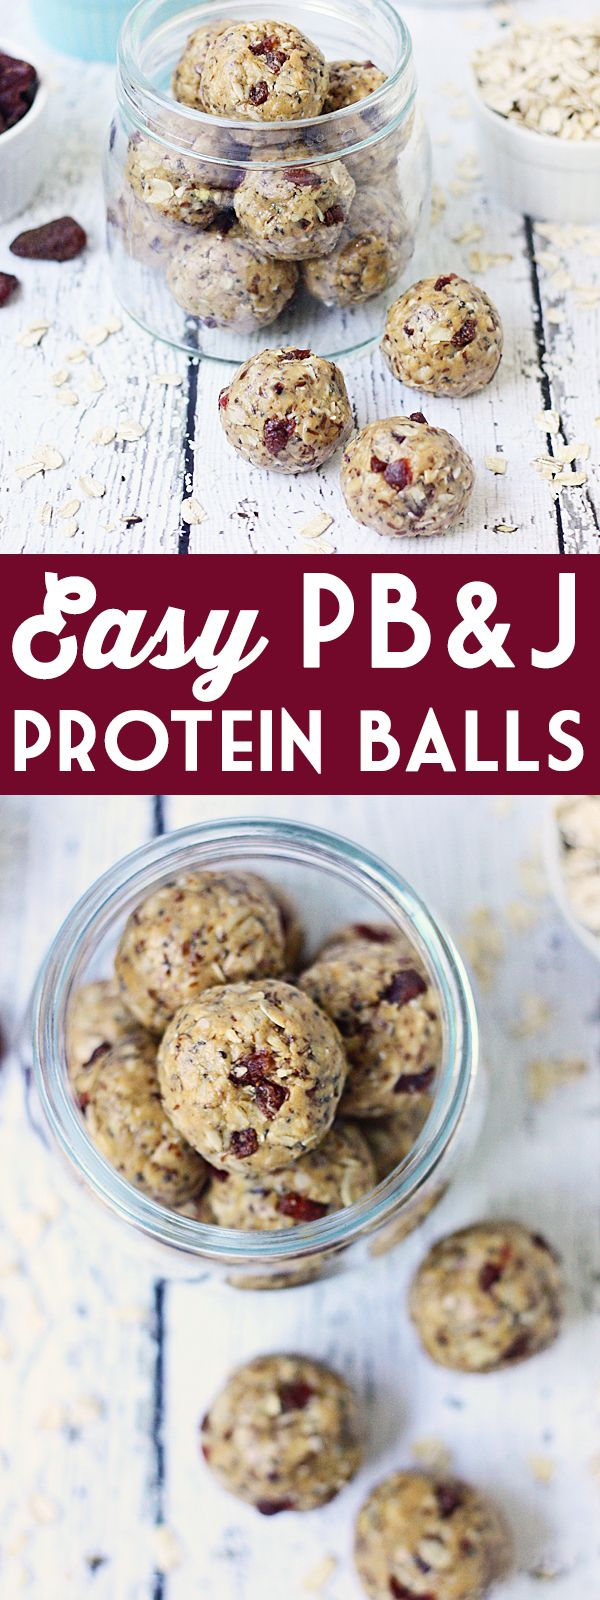 Easy PB&J Protein Balls -- PB&J protein balls are perfect for PB&J lovers looking for a healthy, protein-packed snack thanks to creamy peanut butter and diced dried strawberries. | isthisreallymylife.com #FueledByBobs @bobsredmill